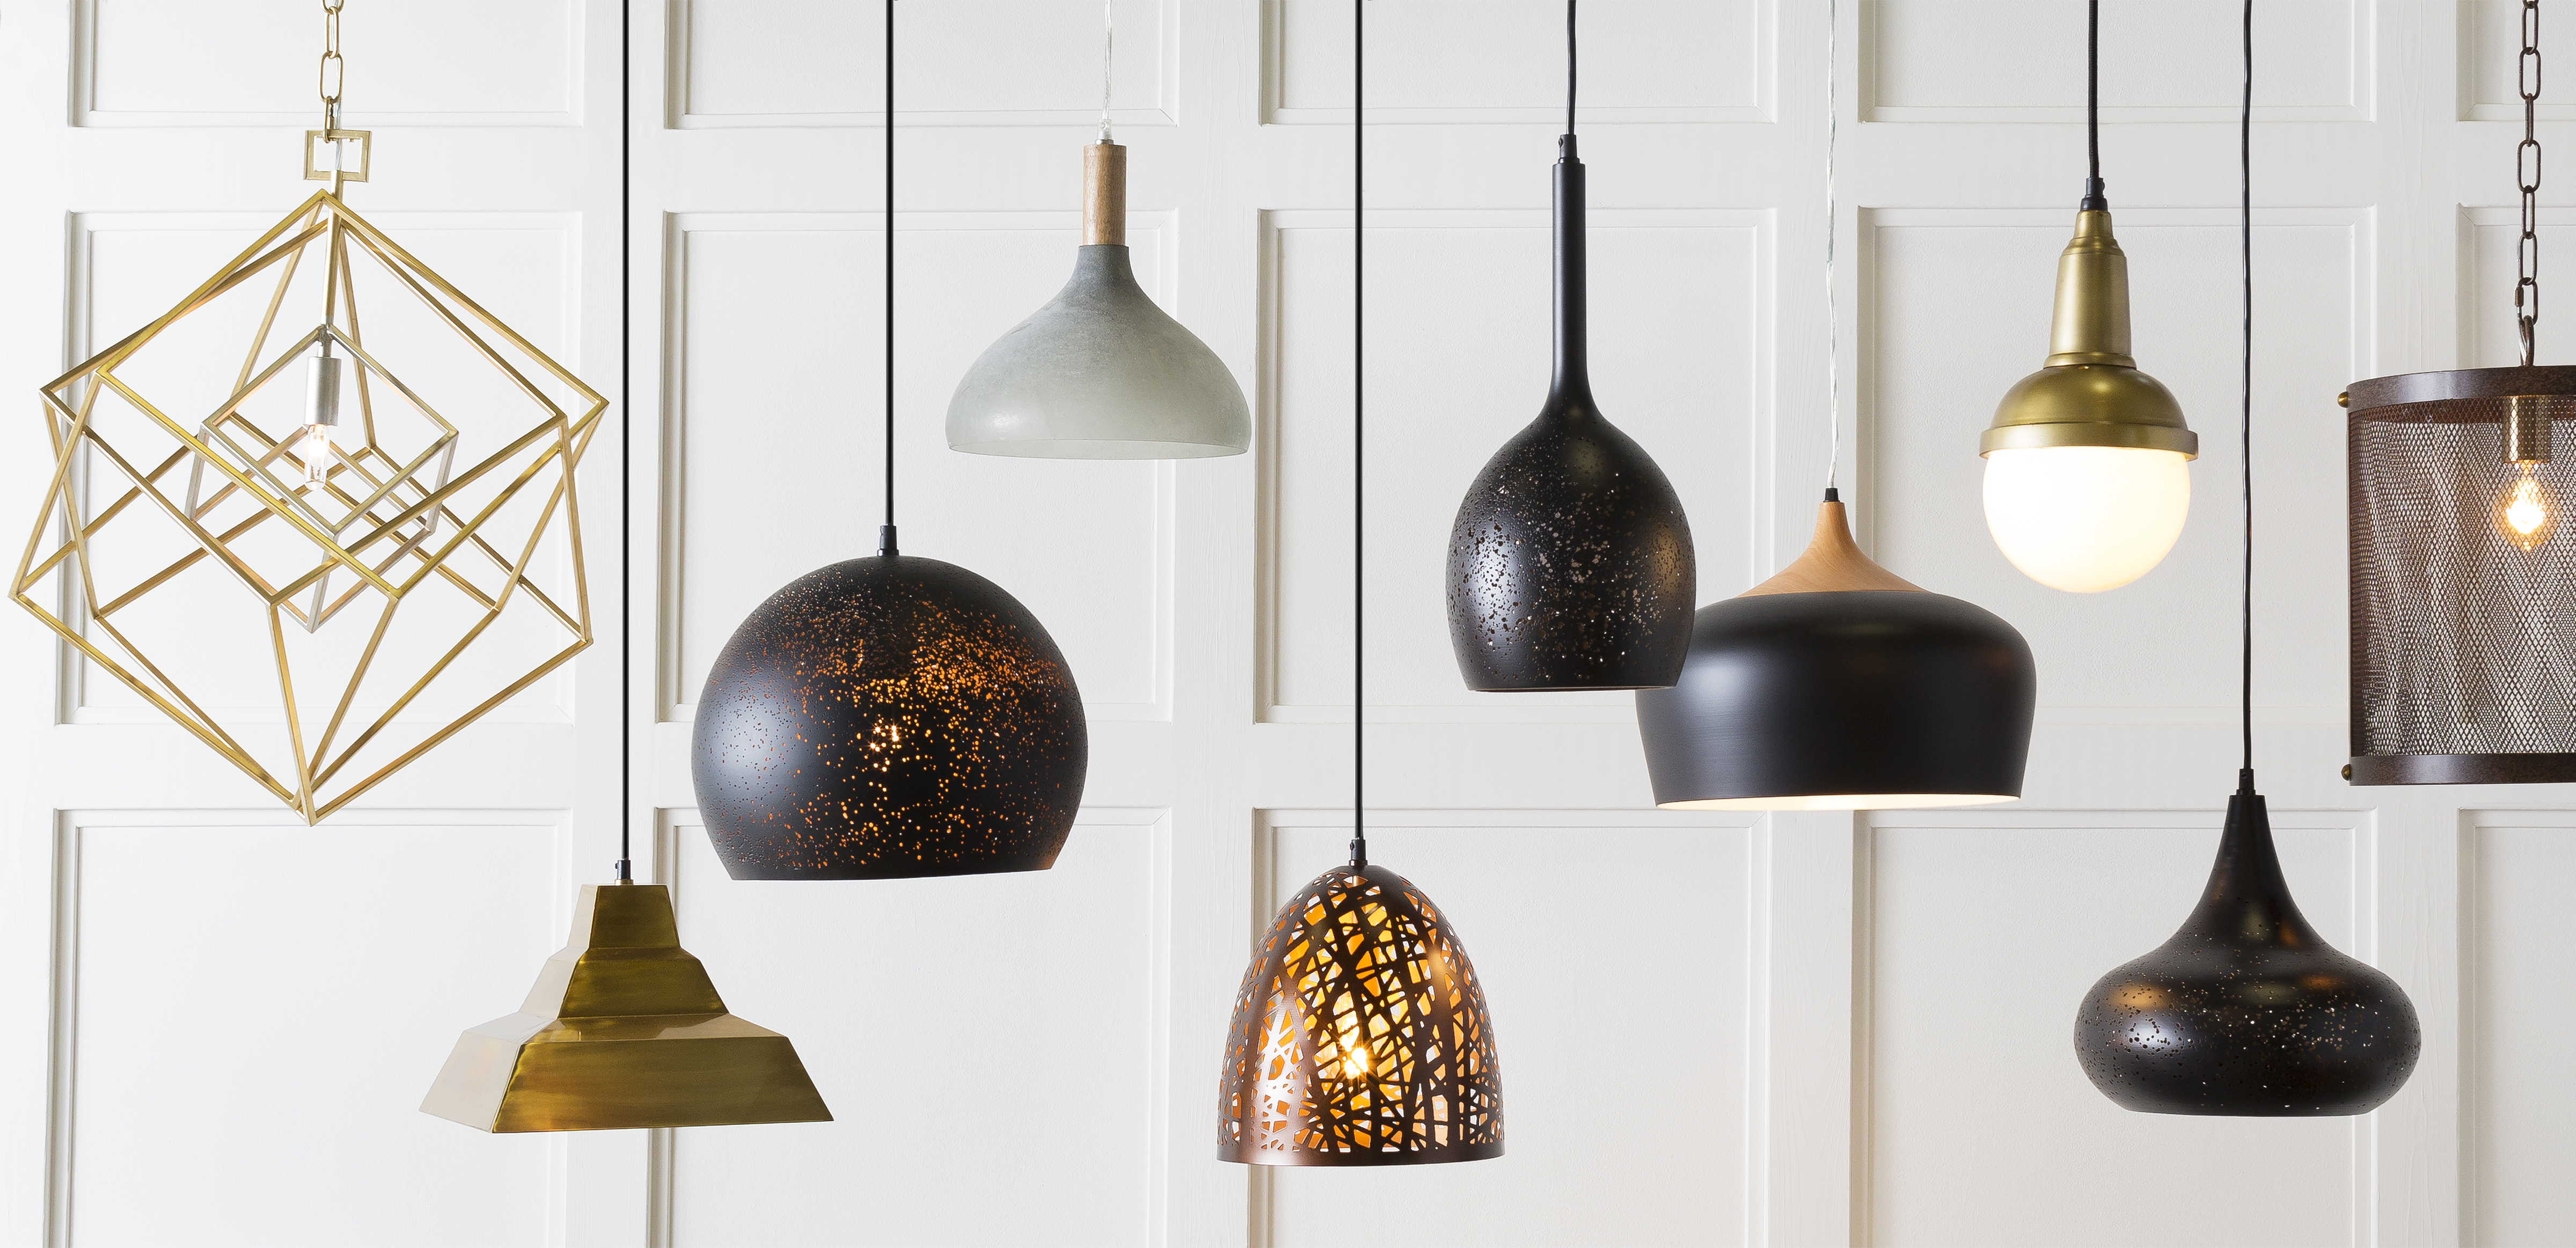 Suryas new ceiling lights have been designed to coordinate seamlessly with its other accessories making it easy to create a complete look for any space